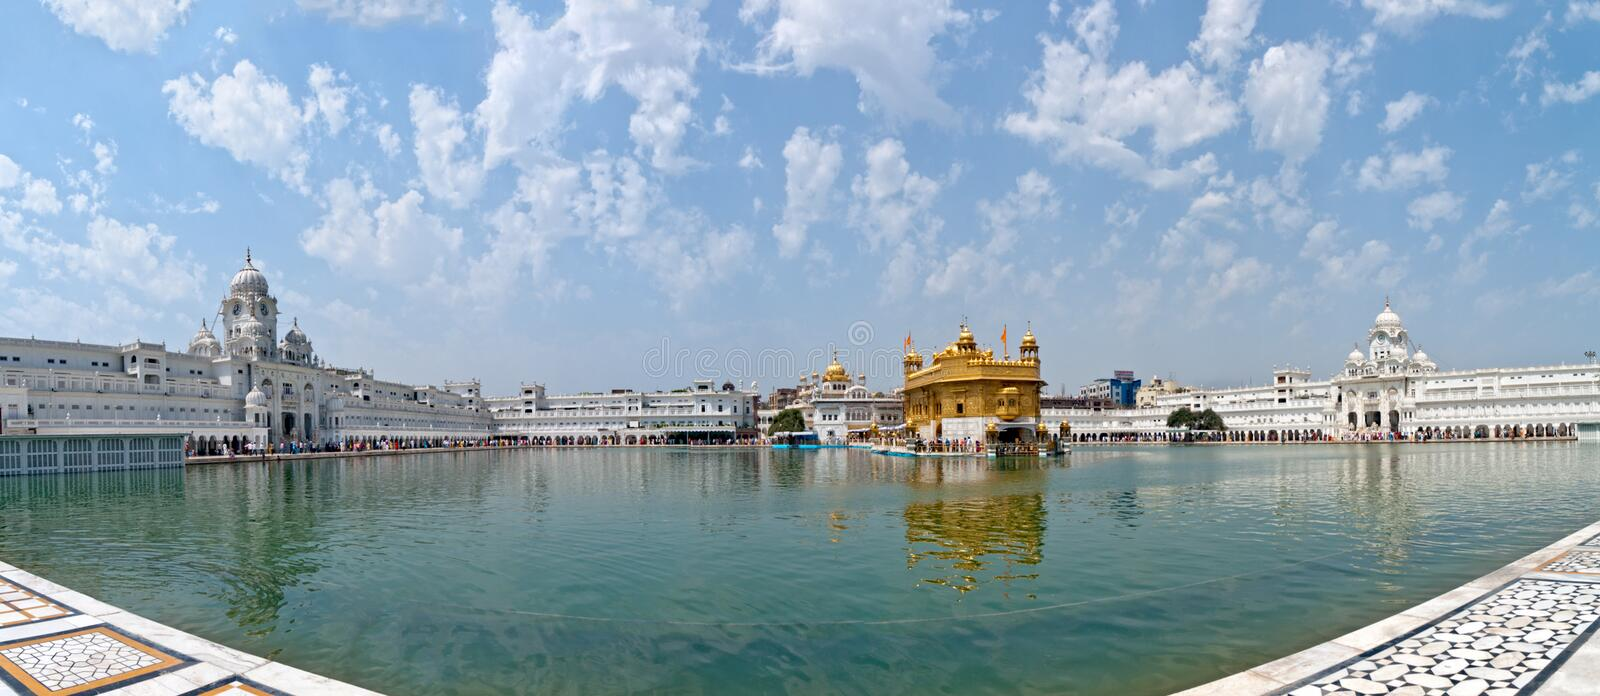 Sikh Golden Temple Stock Image